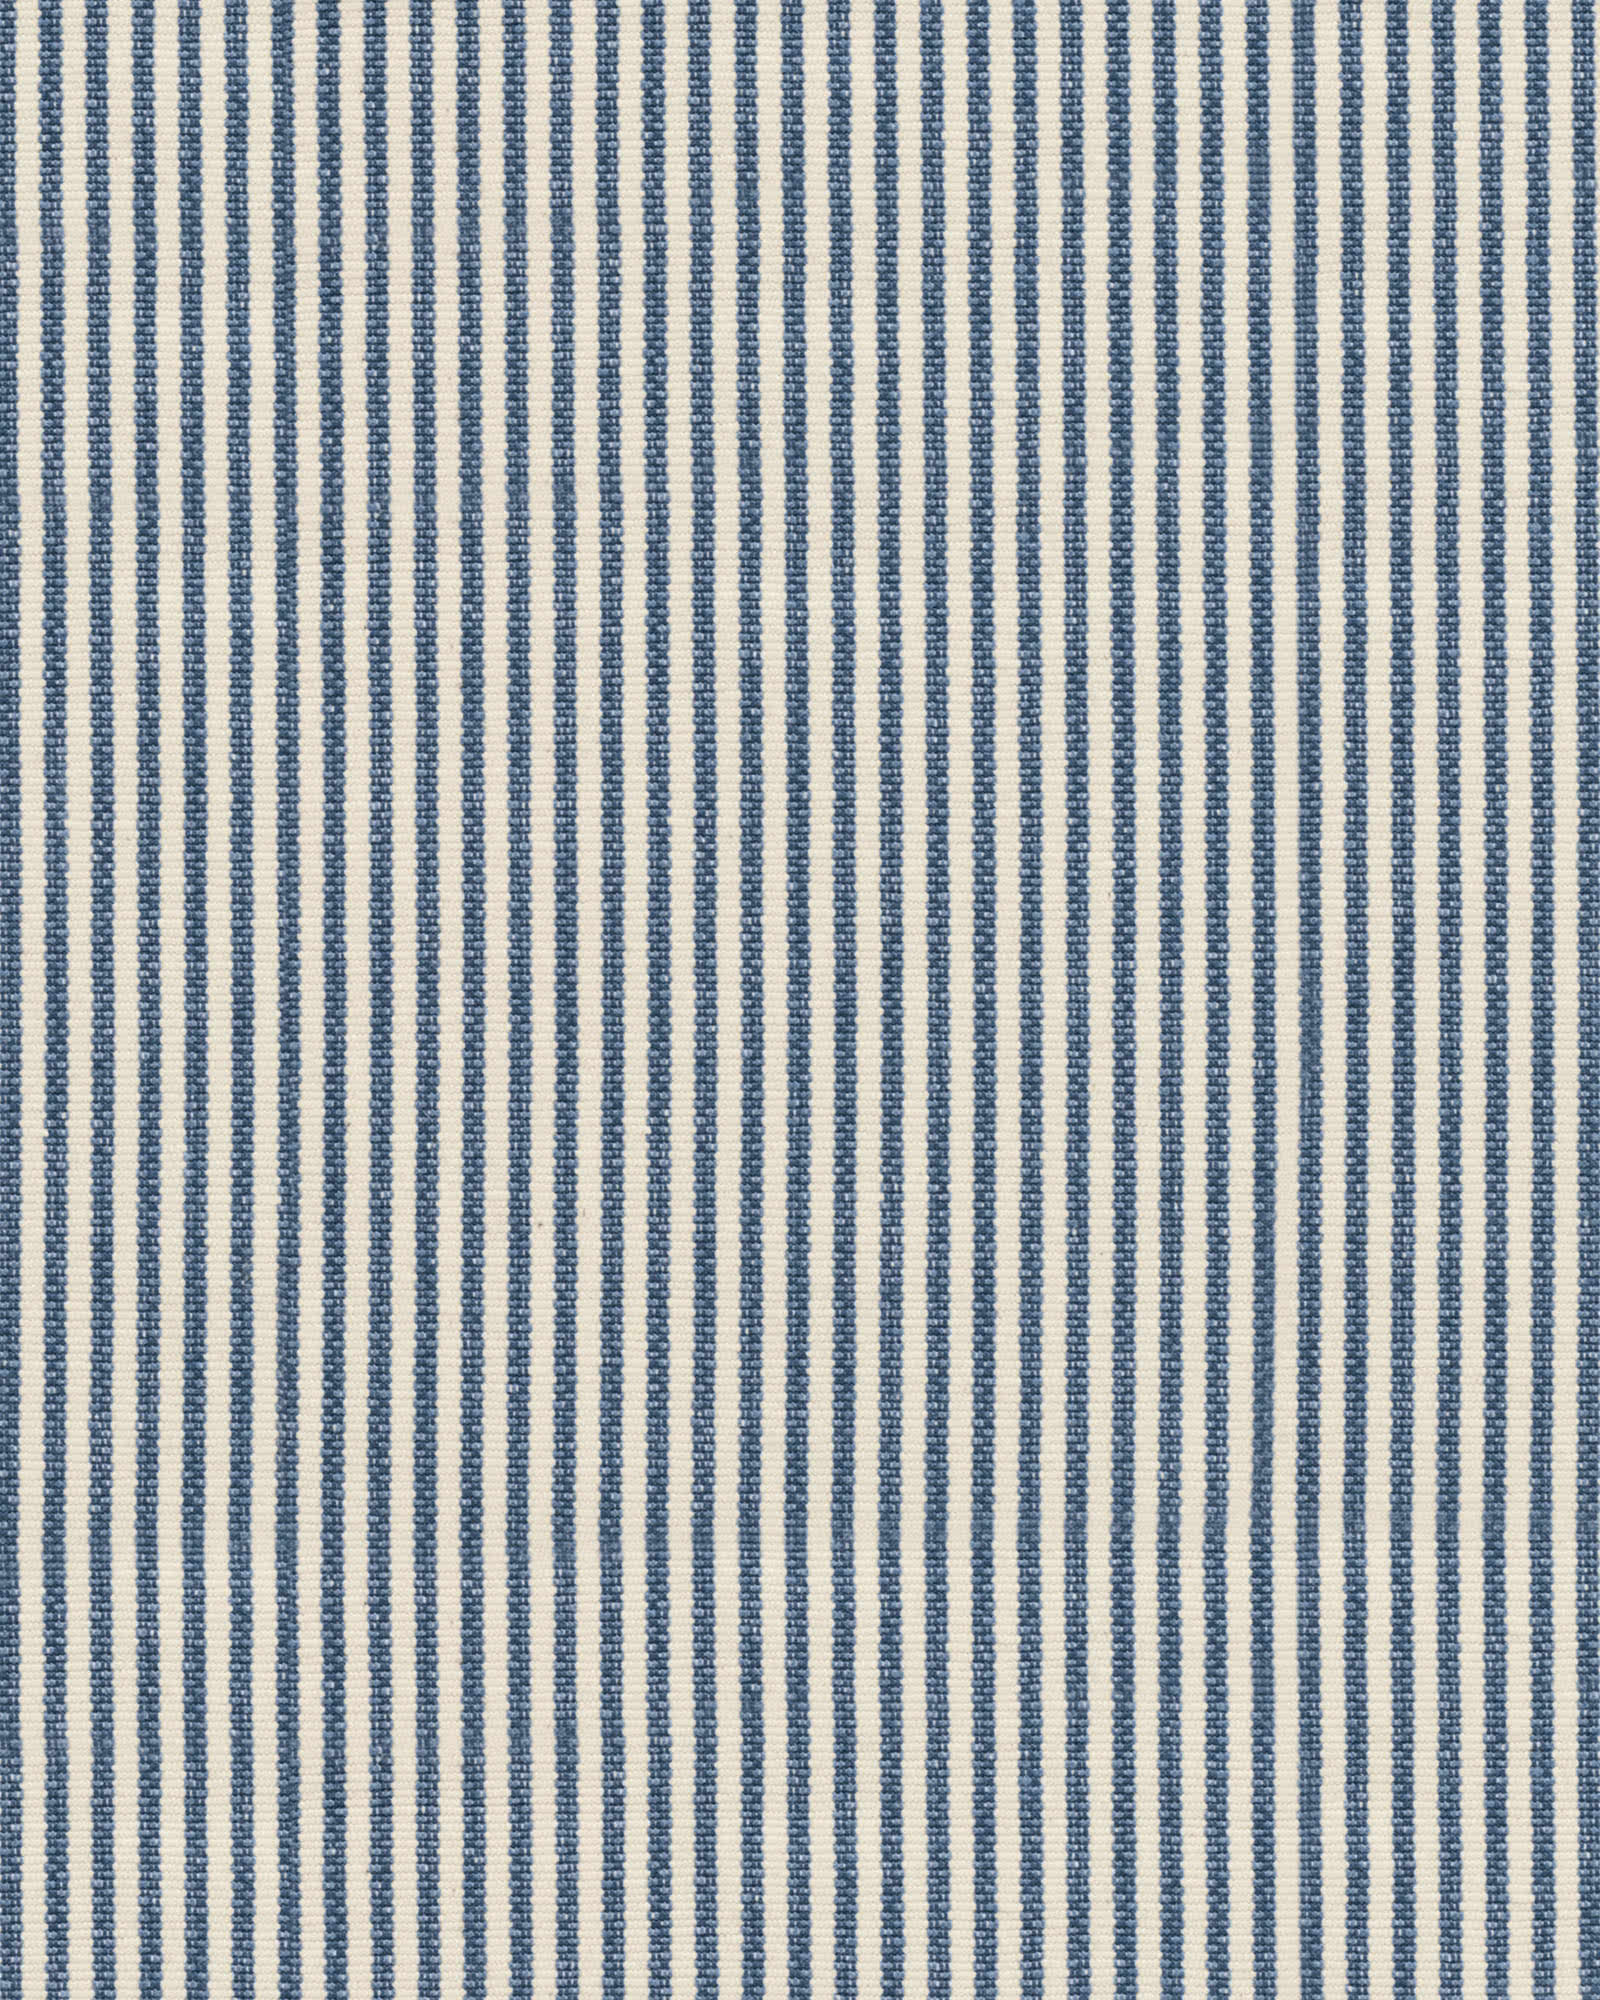 Pinstripe Cotton Fabric - Indigo, Indigo